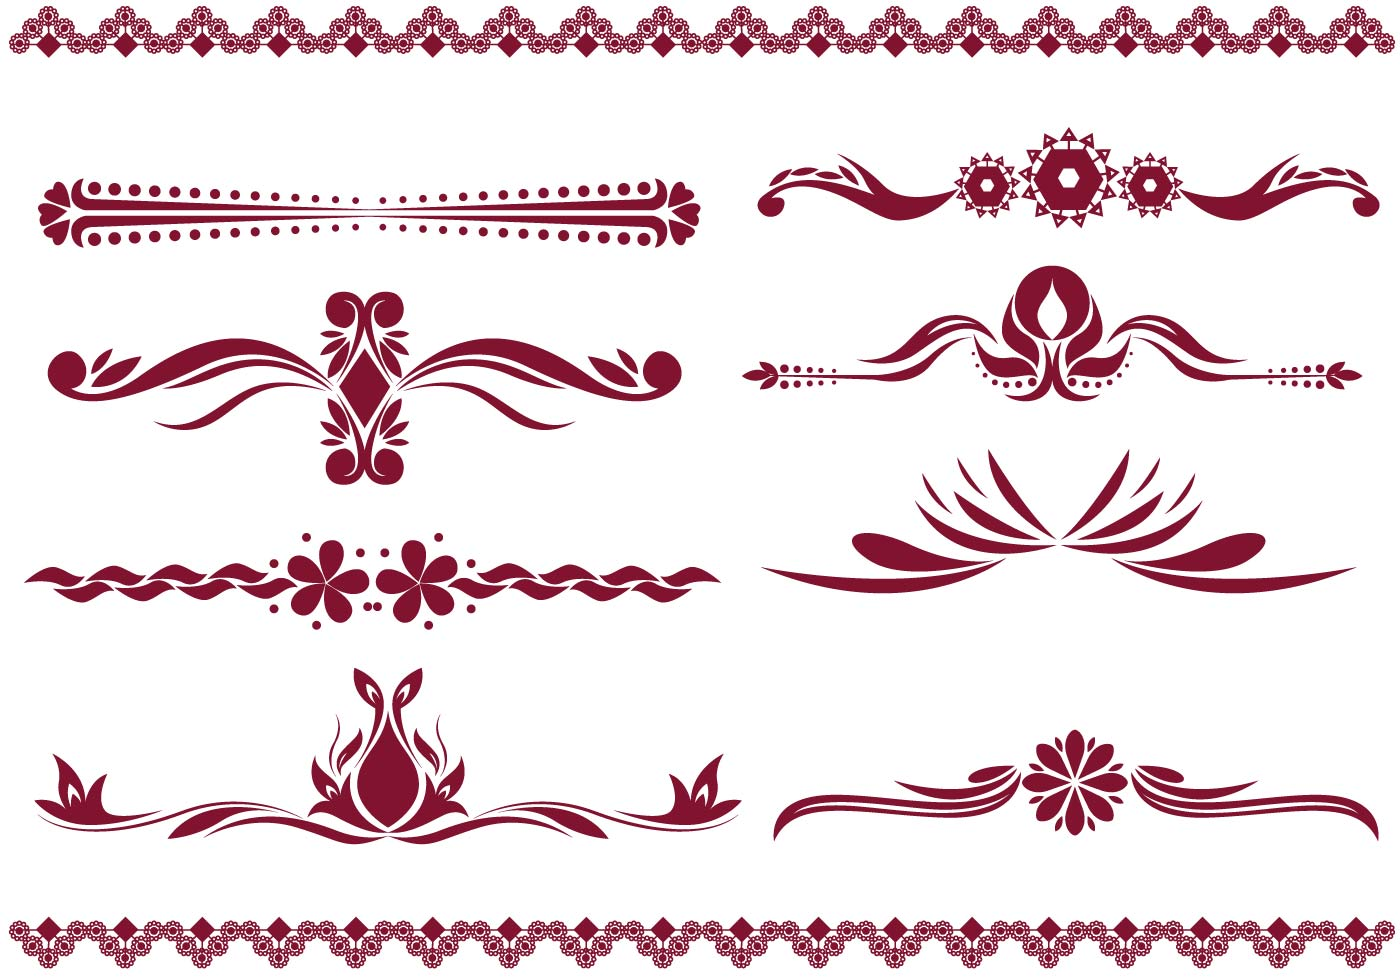 Line Drawing Vector Free : Fancy line vectors download free vector art stock